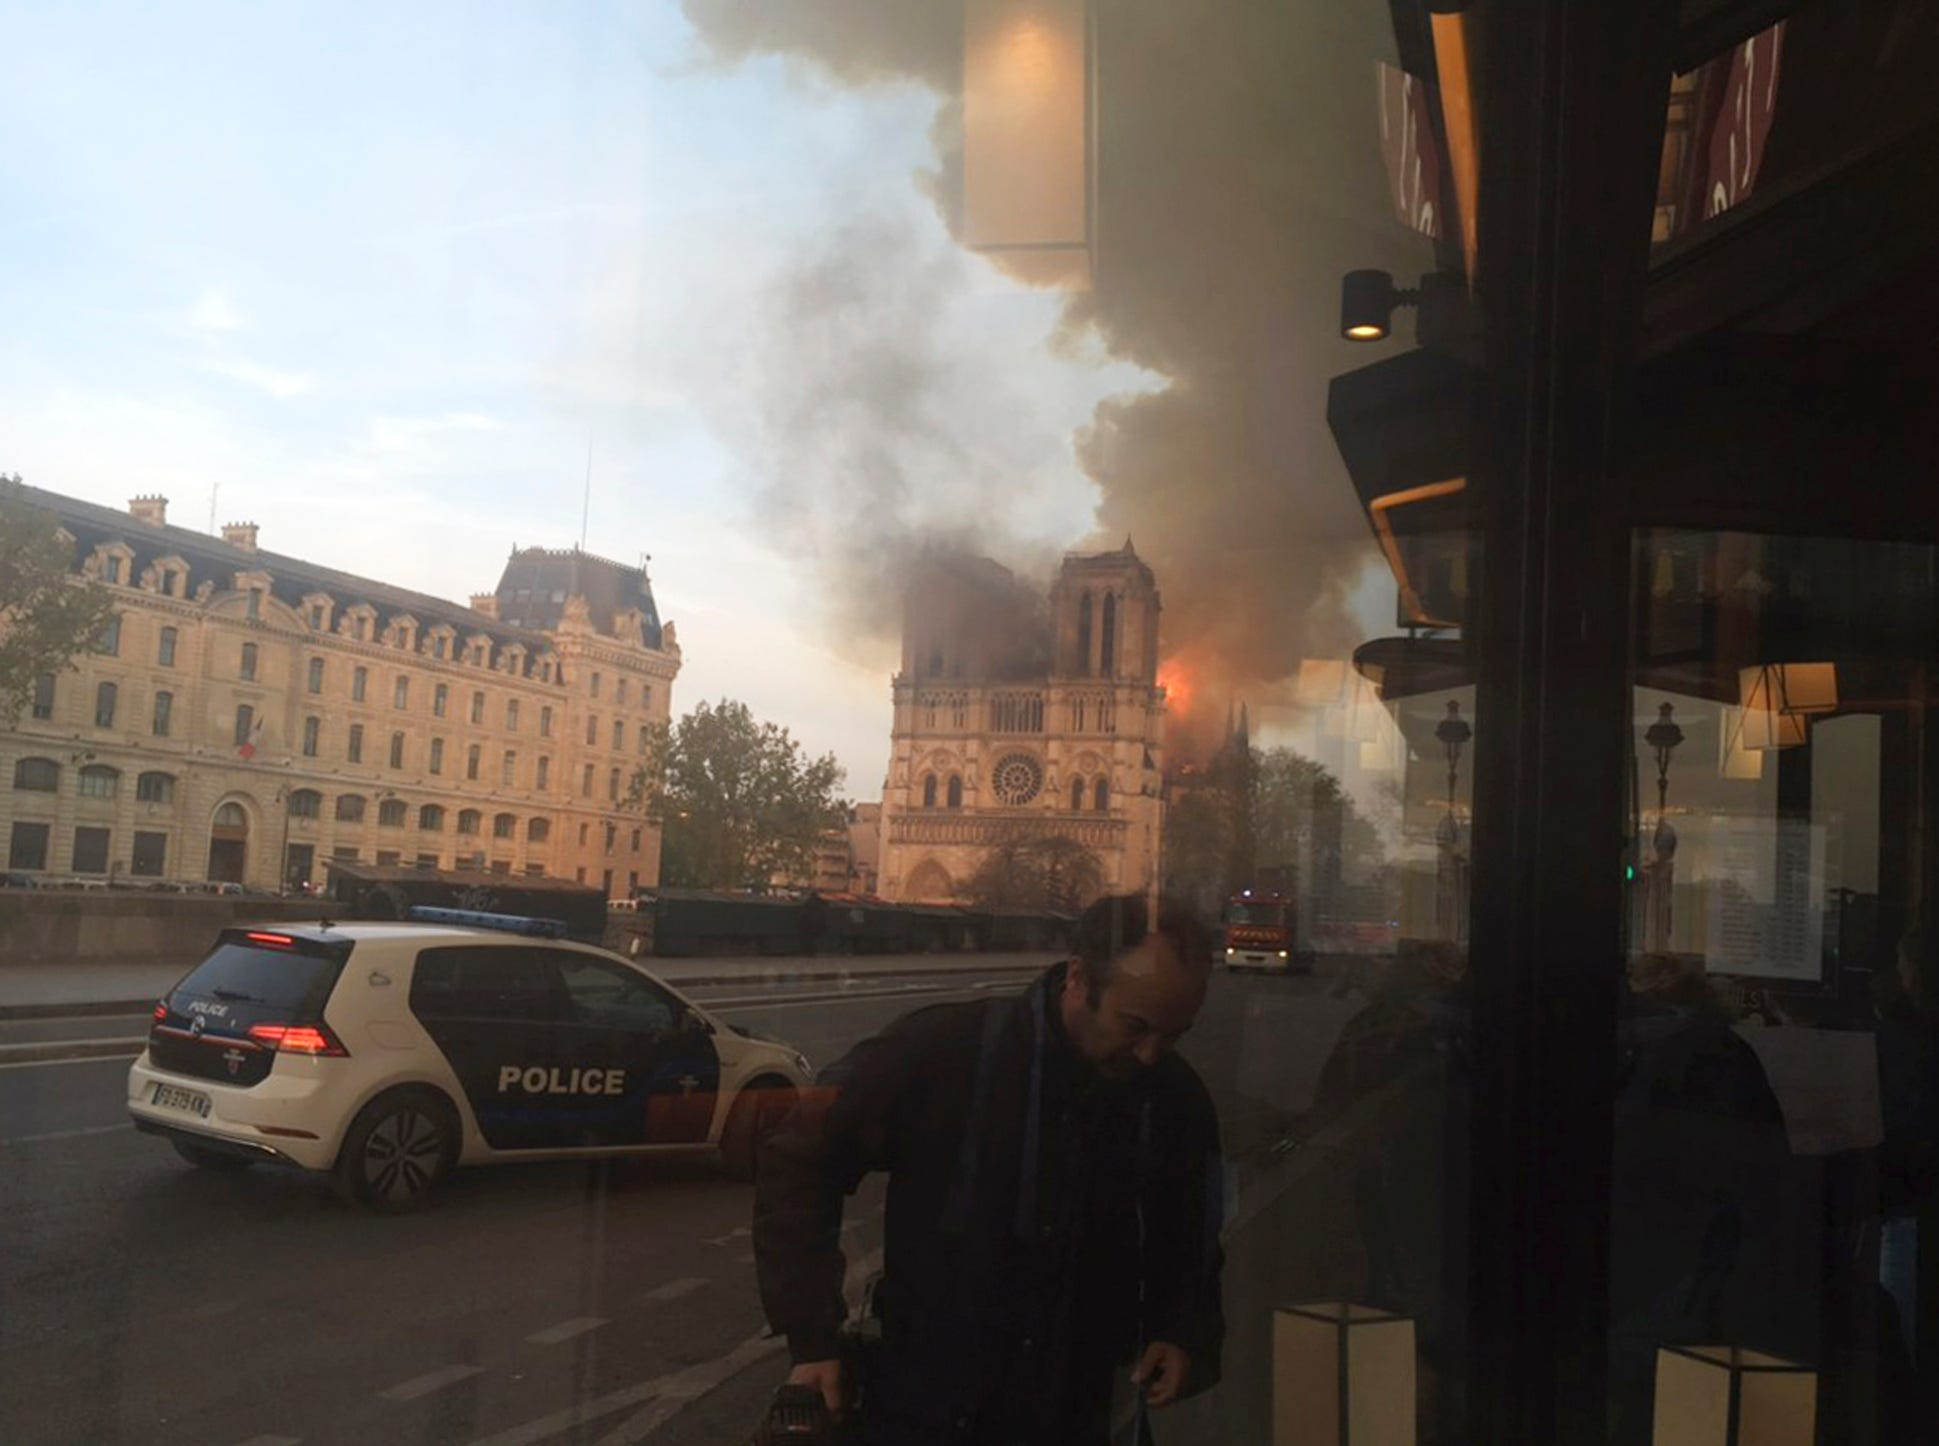 In this photo taken from inside a cafe, a police car patrol while Notre Dame cathedral isburning in Paris, Monday, April 15, 2019. A massive fire engulfed the roof of Notre Dame Cathedral in the heart of the French capital Monday, toppling its spire and sending thick plumes of smoke high into the blue sky as tourists and Parisians looked on aghast from the streets below. (AP Photo/Lori Hinnant)